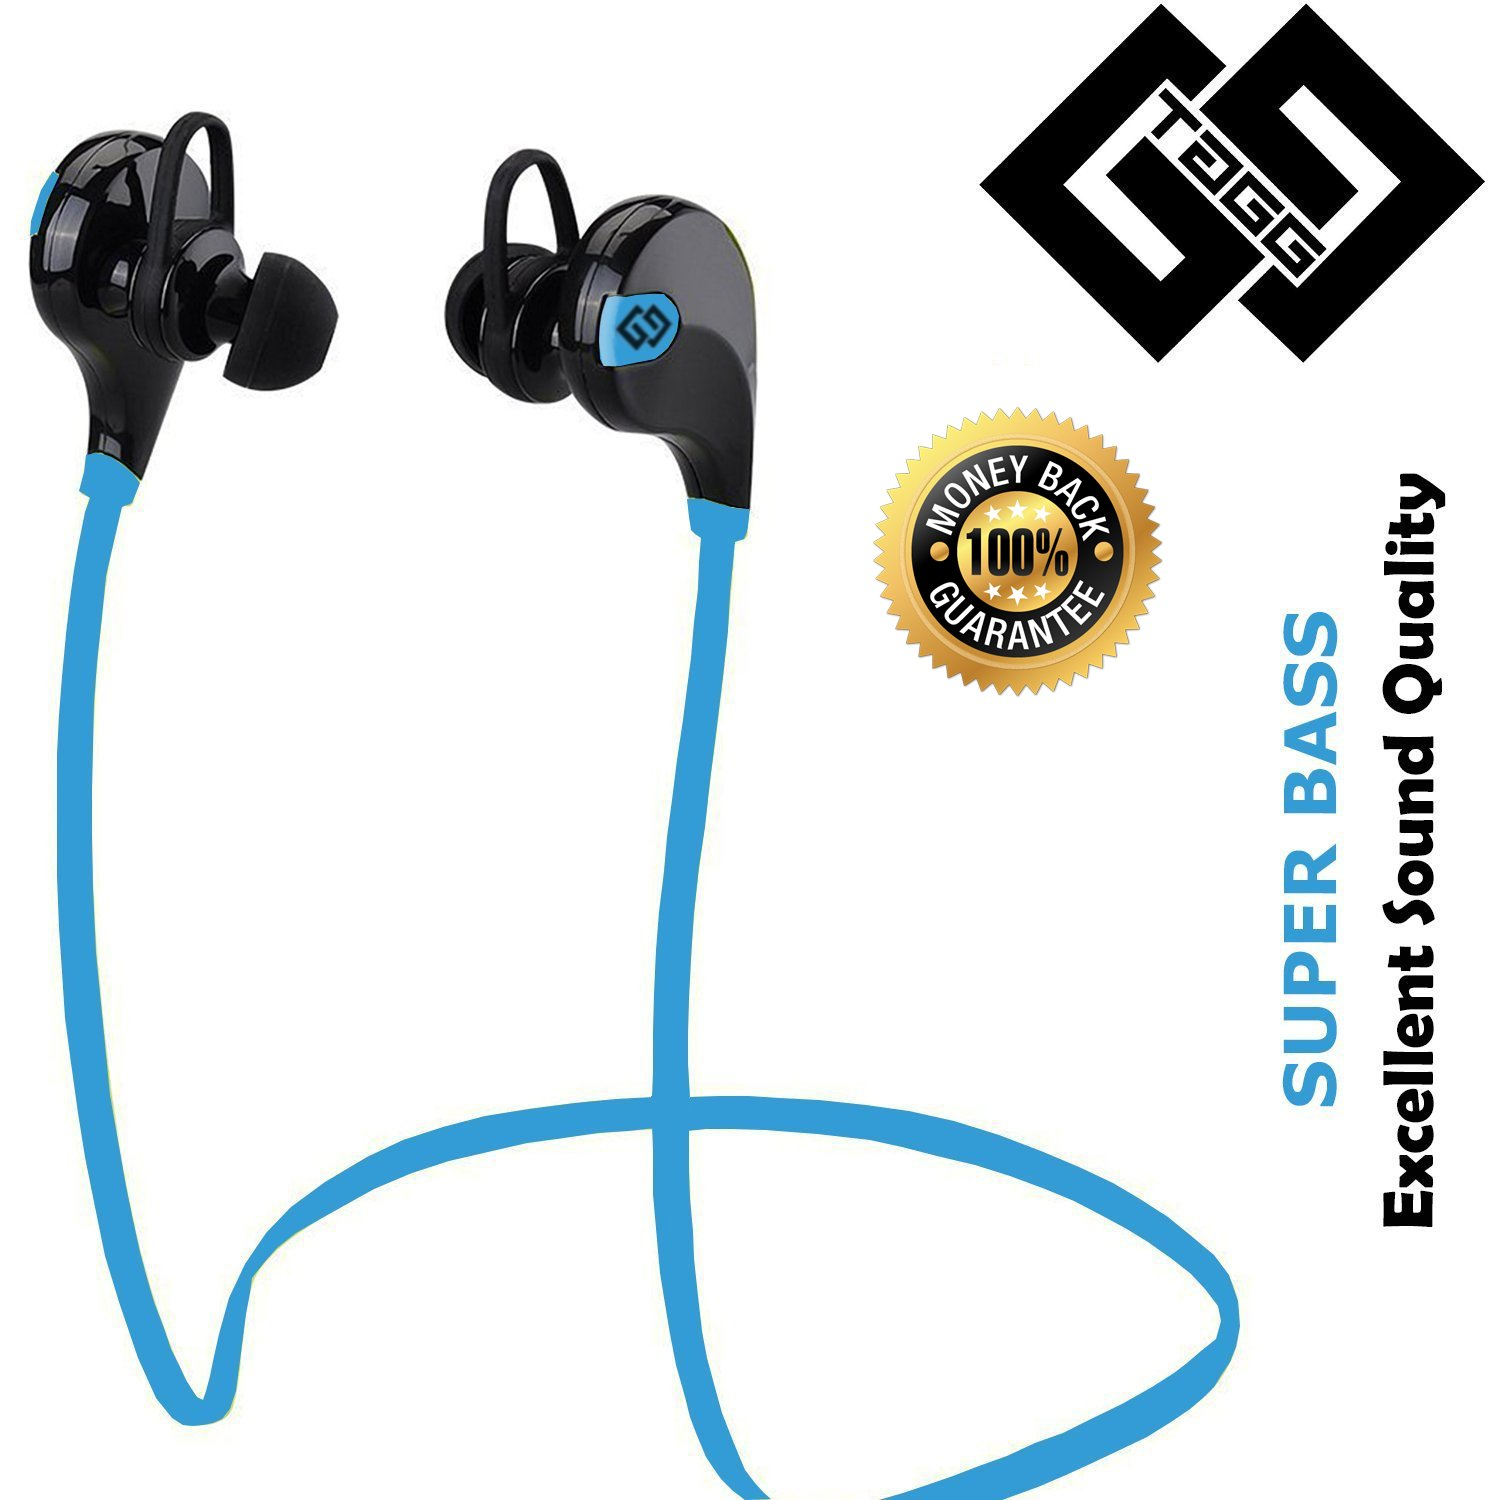 Tagg T 07 Wireless Sports Bluetooth Headset Electronics Hp In Ear H2310 Navy Blue